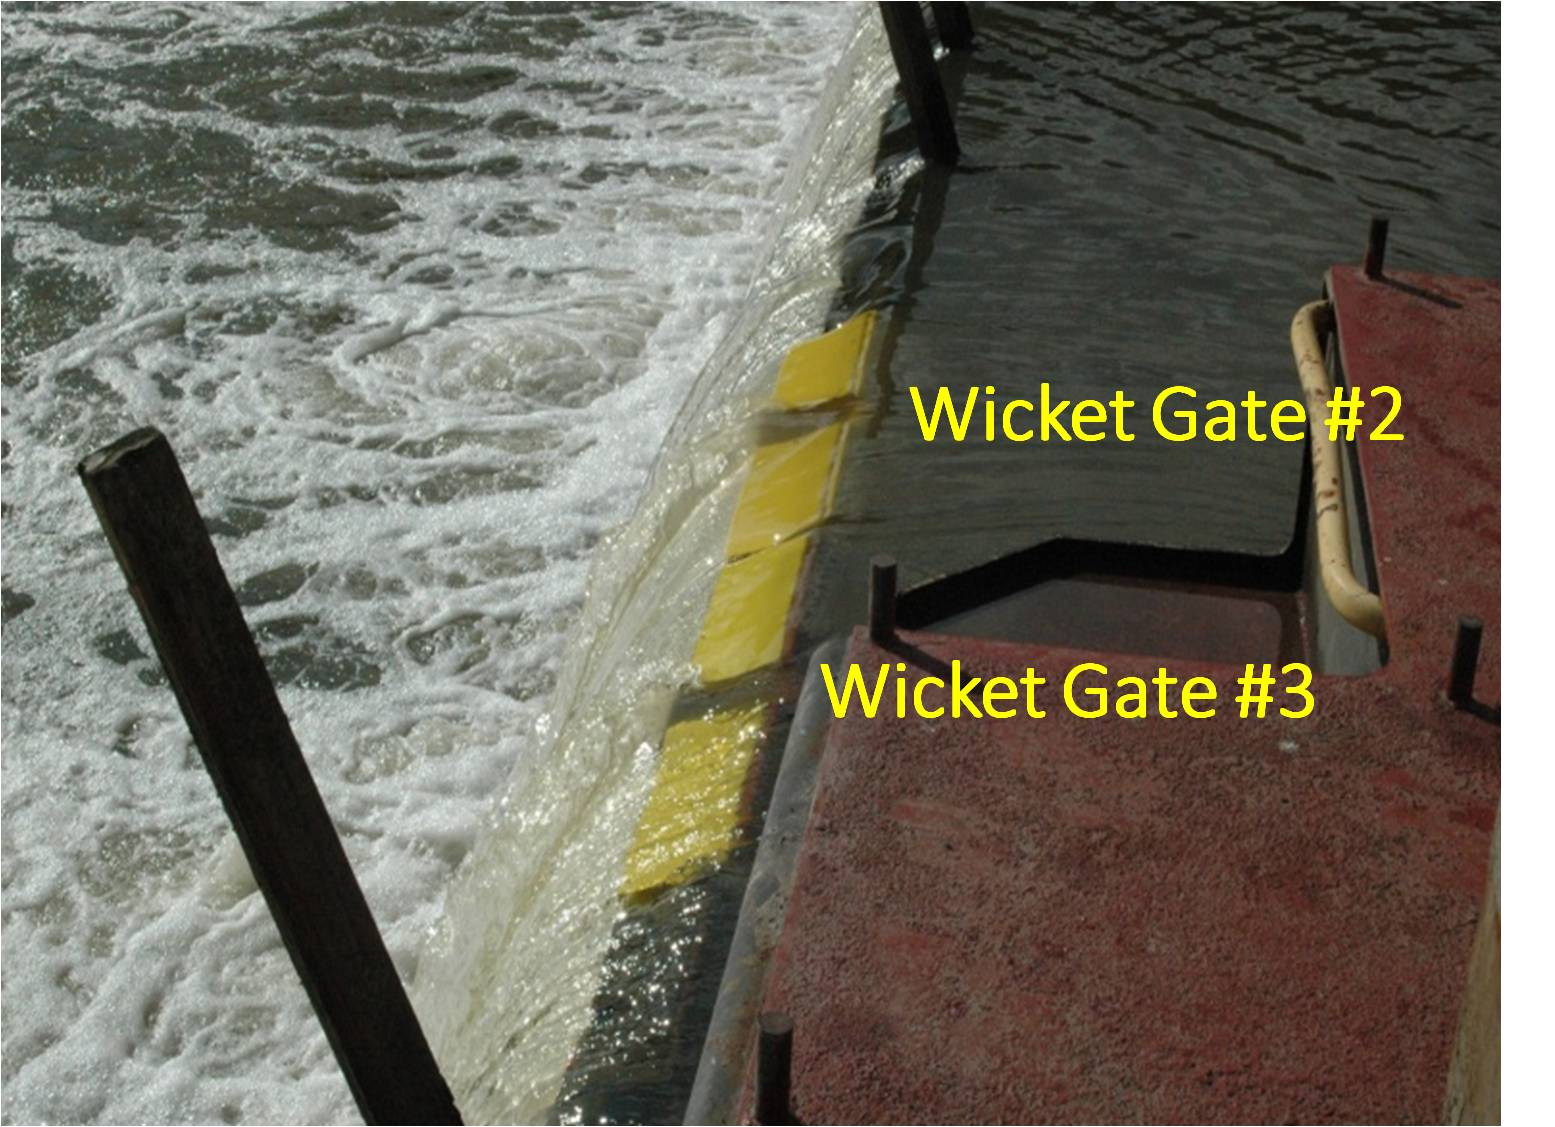 9._Wicket_gates_in_up_position_to_slow_the_flow_of_water.jpg